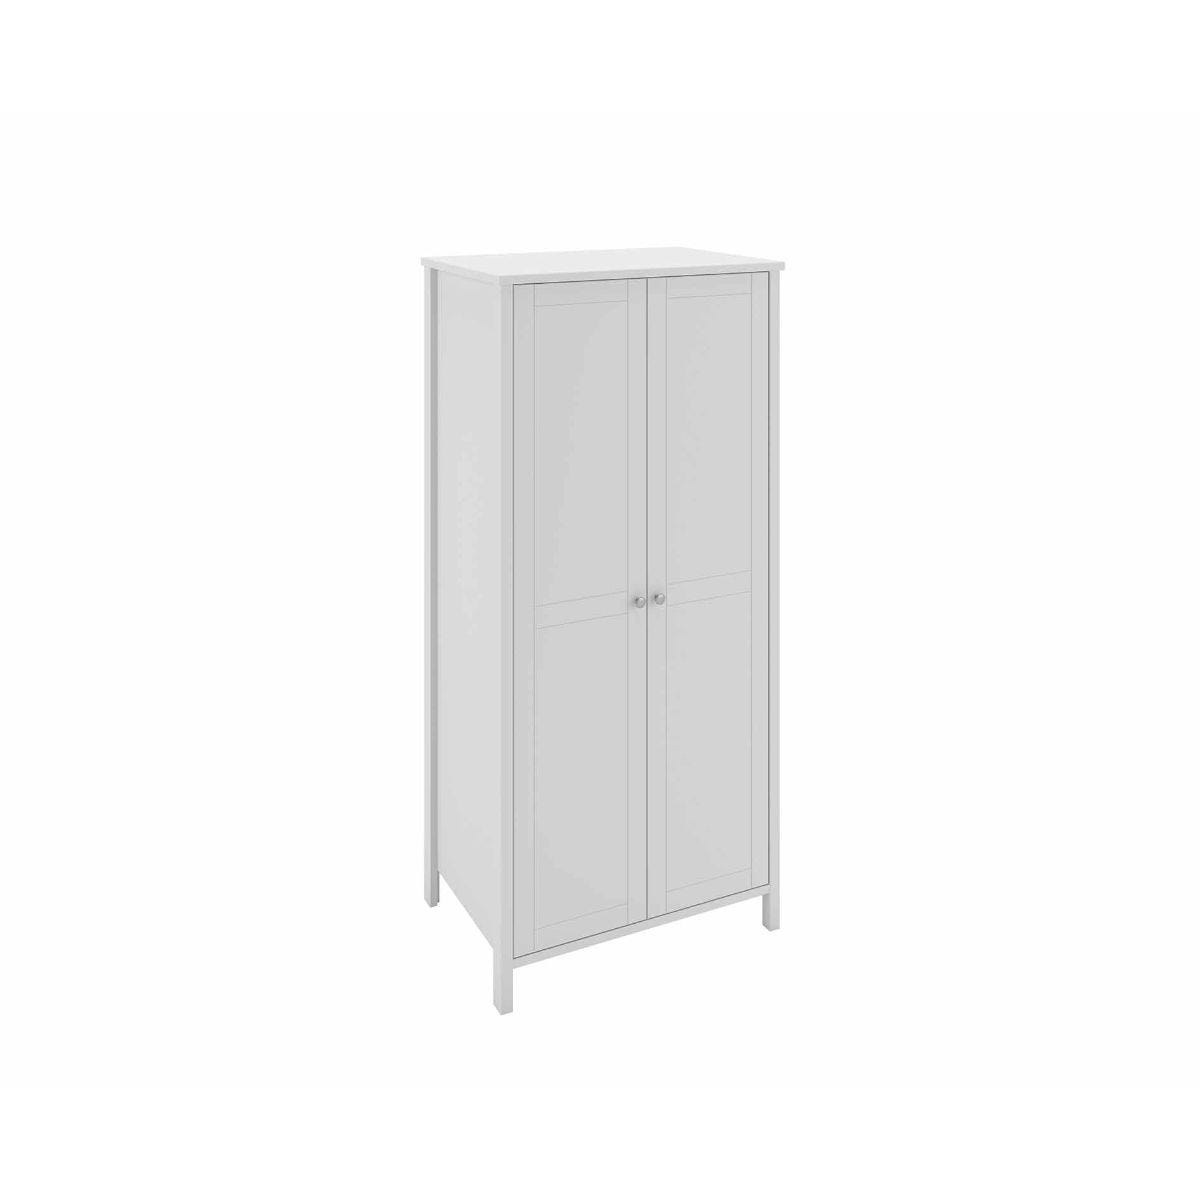 Steens Tromso 2 Door Wardrobe, White